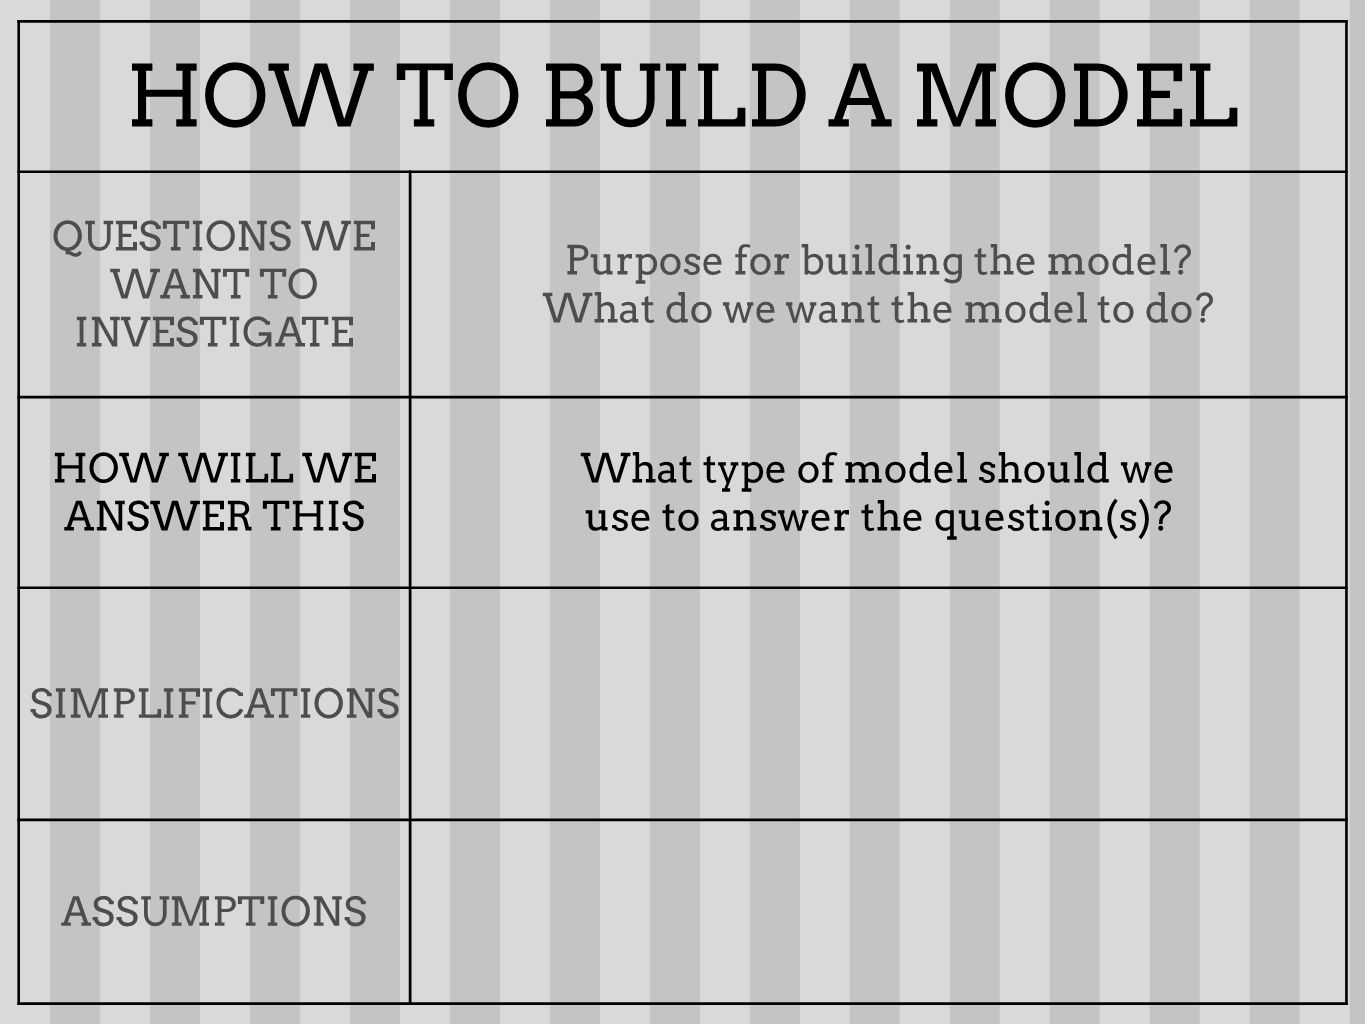 HOW TO BUILD A MODEL QUESTIONS WE WANT TO INVESTIGATE Purpose for building the model? What do we want the model to do? HOW WILL WE ANSWER THIS What ty